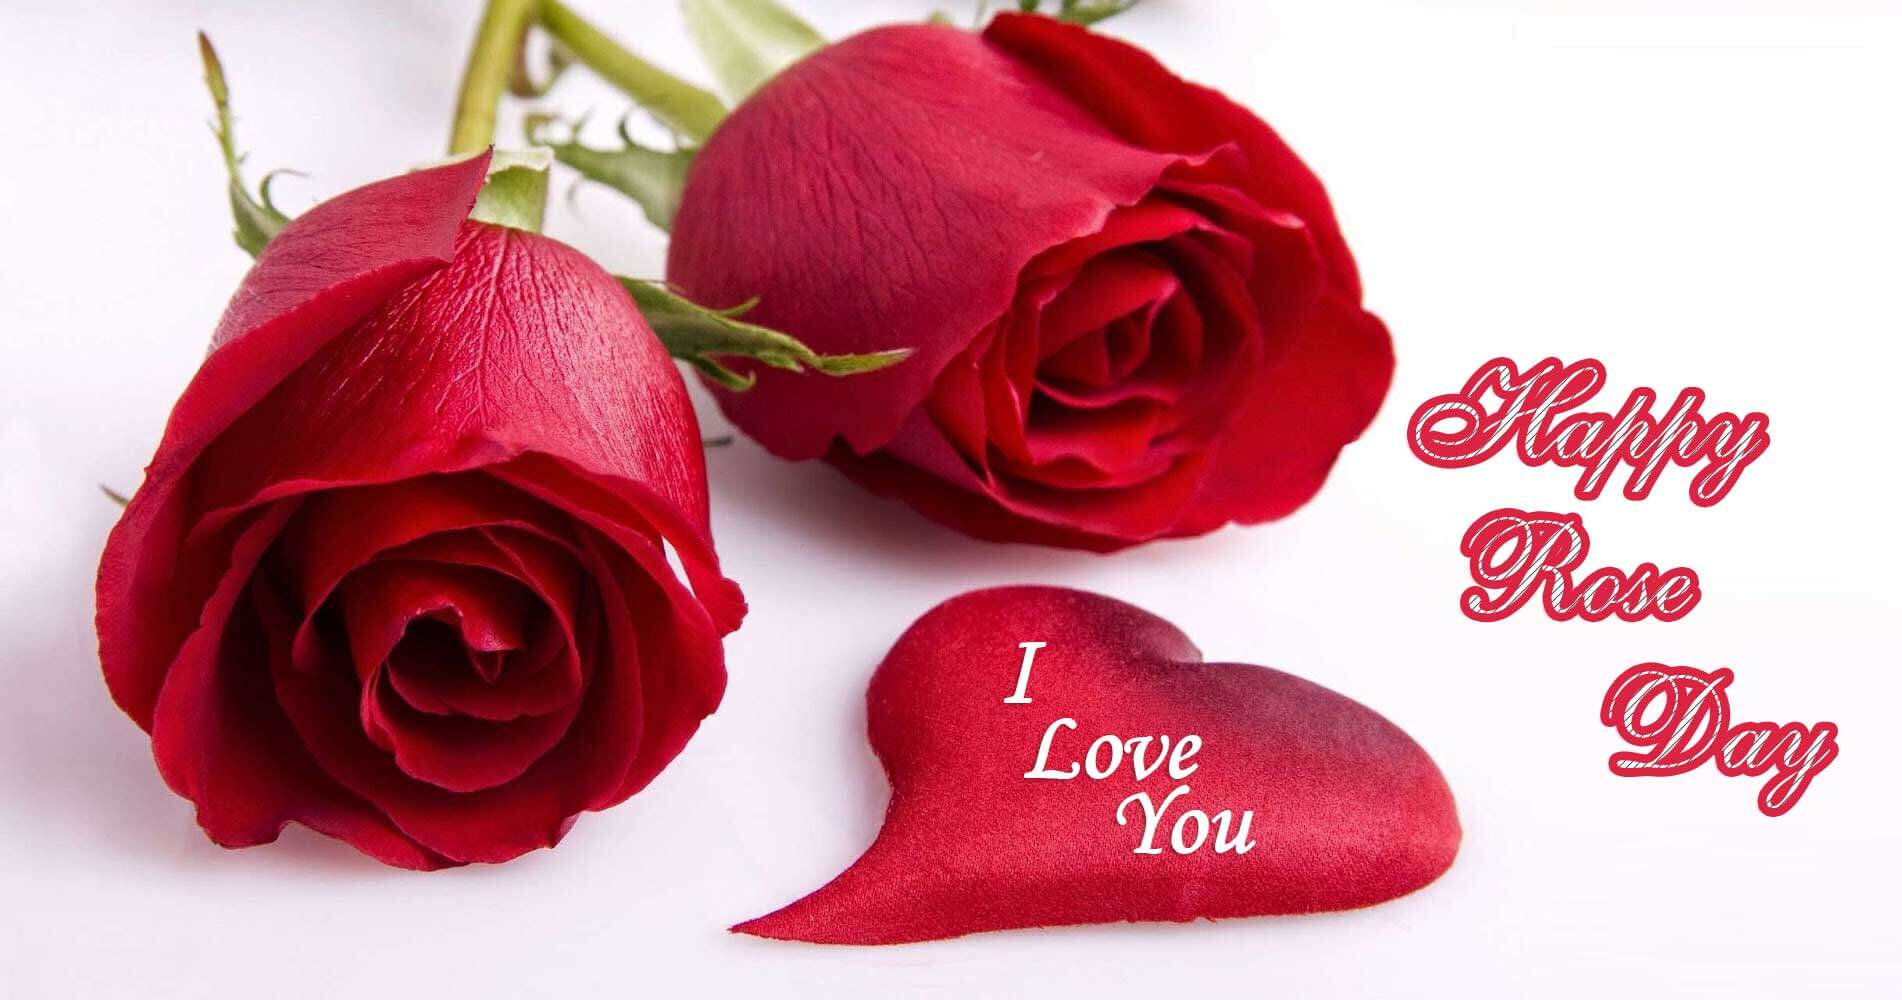 happy rose day wishes valentine i love you image picture hd wallpaper